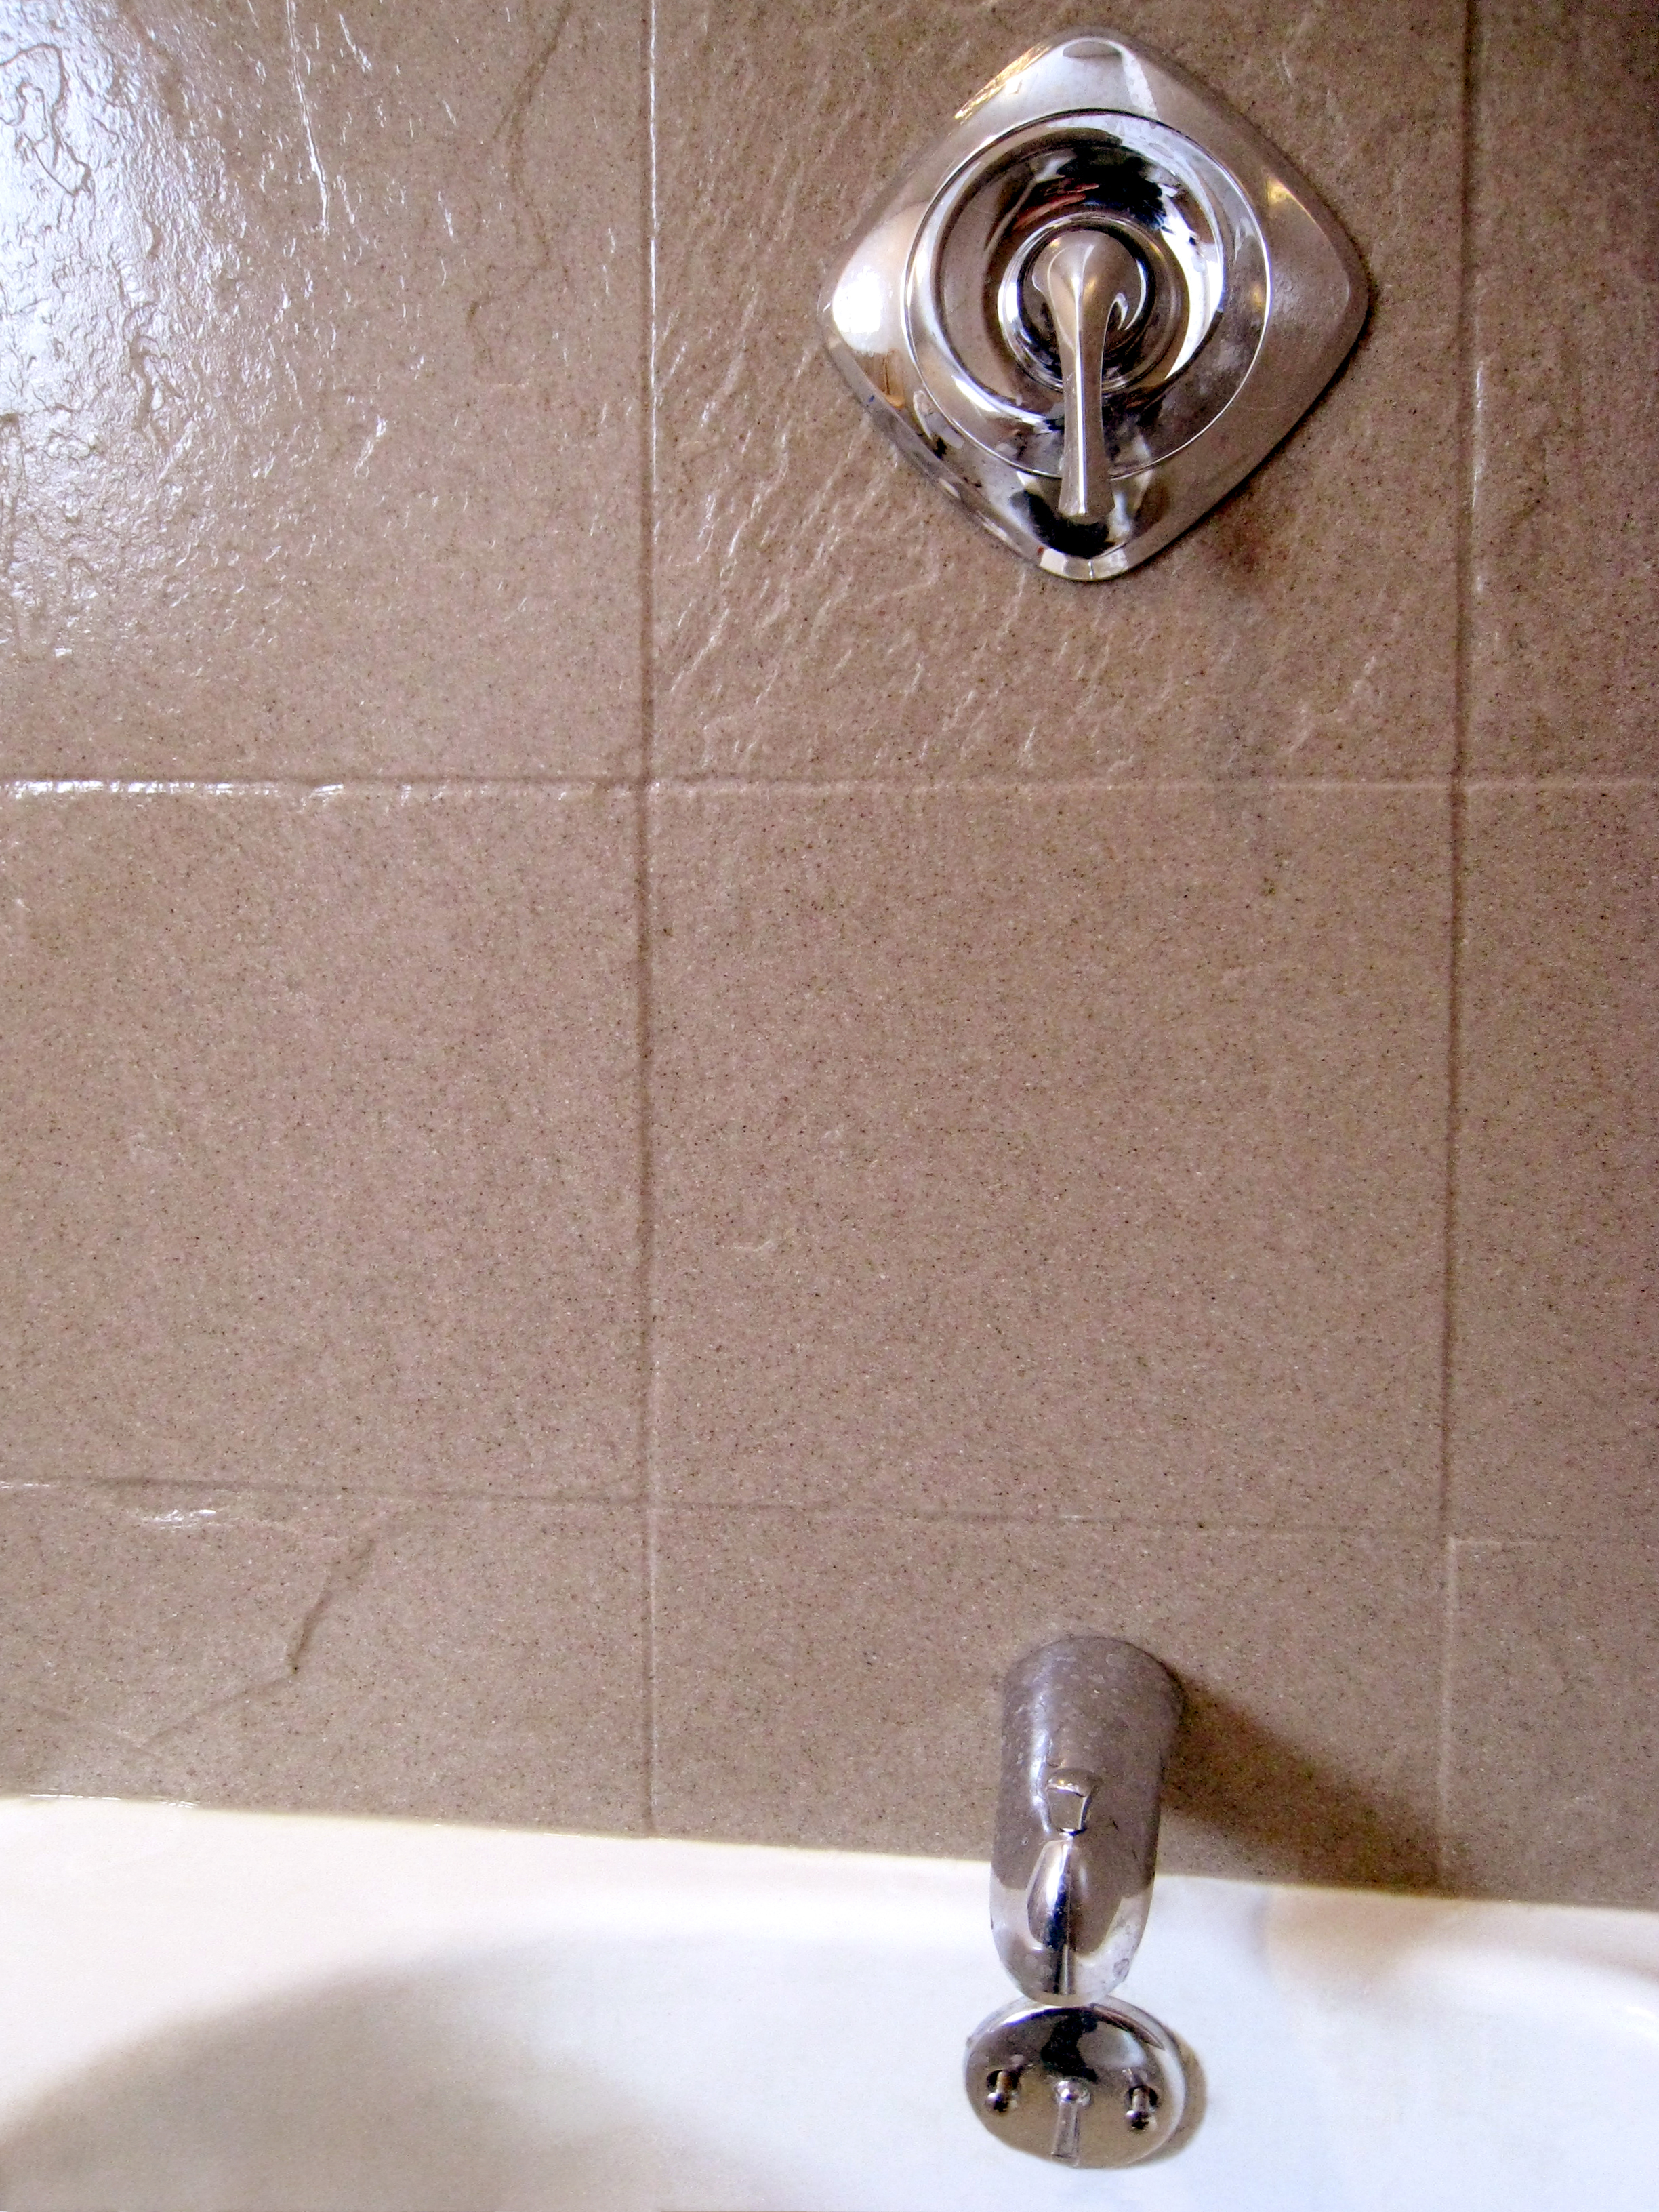 Green Star Home Remodeling Group LLC image 14